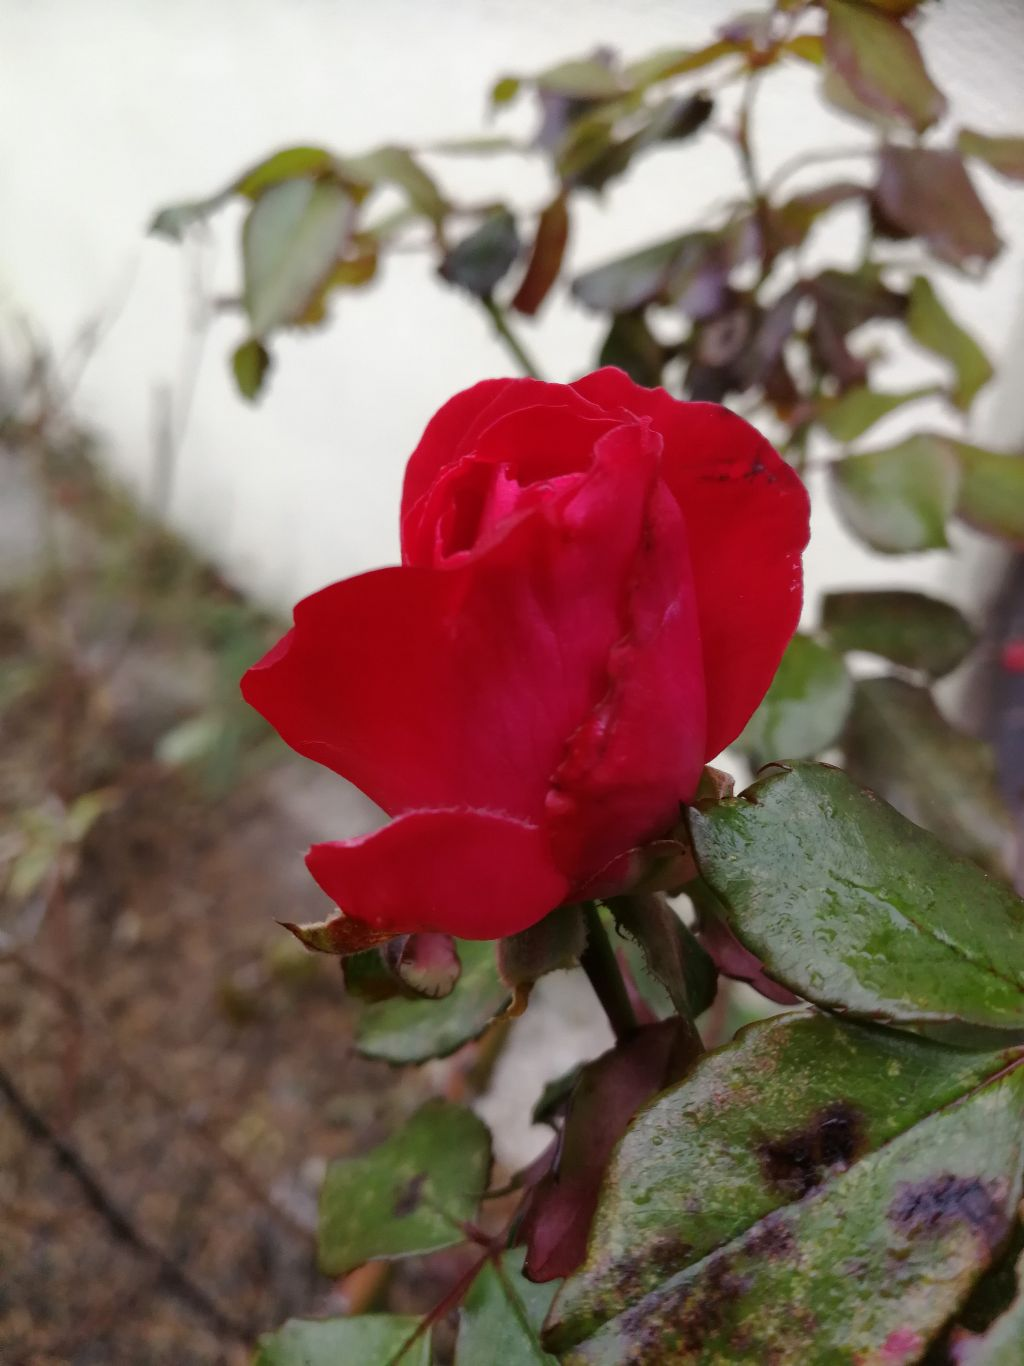 #rose #redrose #november... And still there are roses blooming